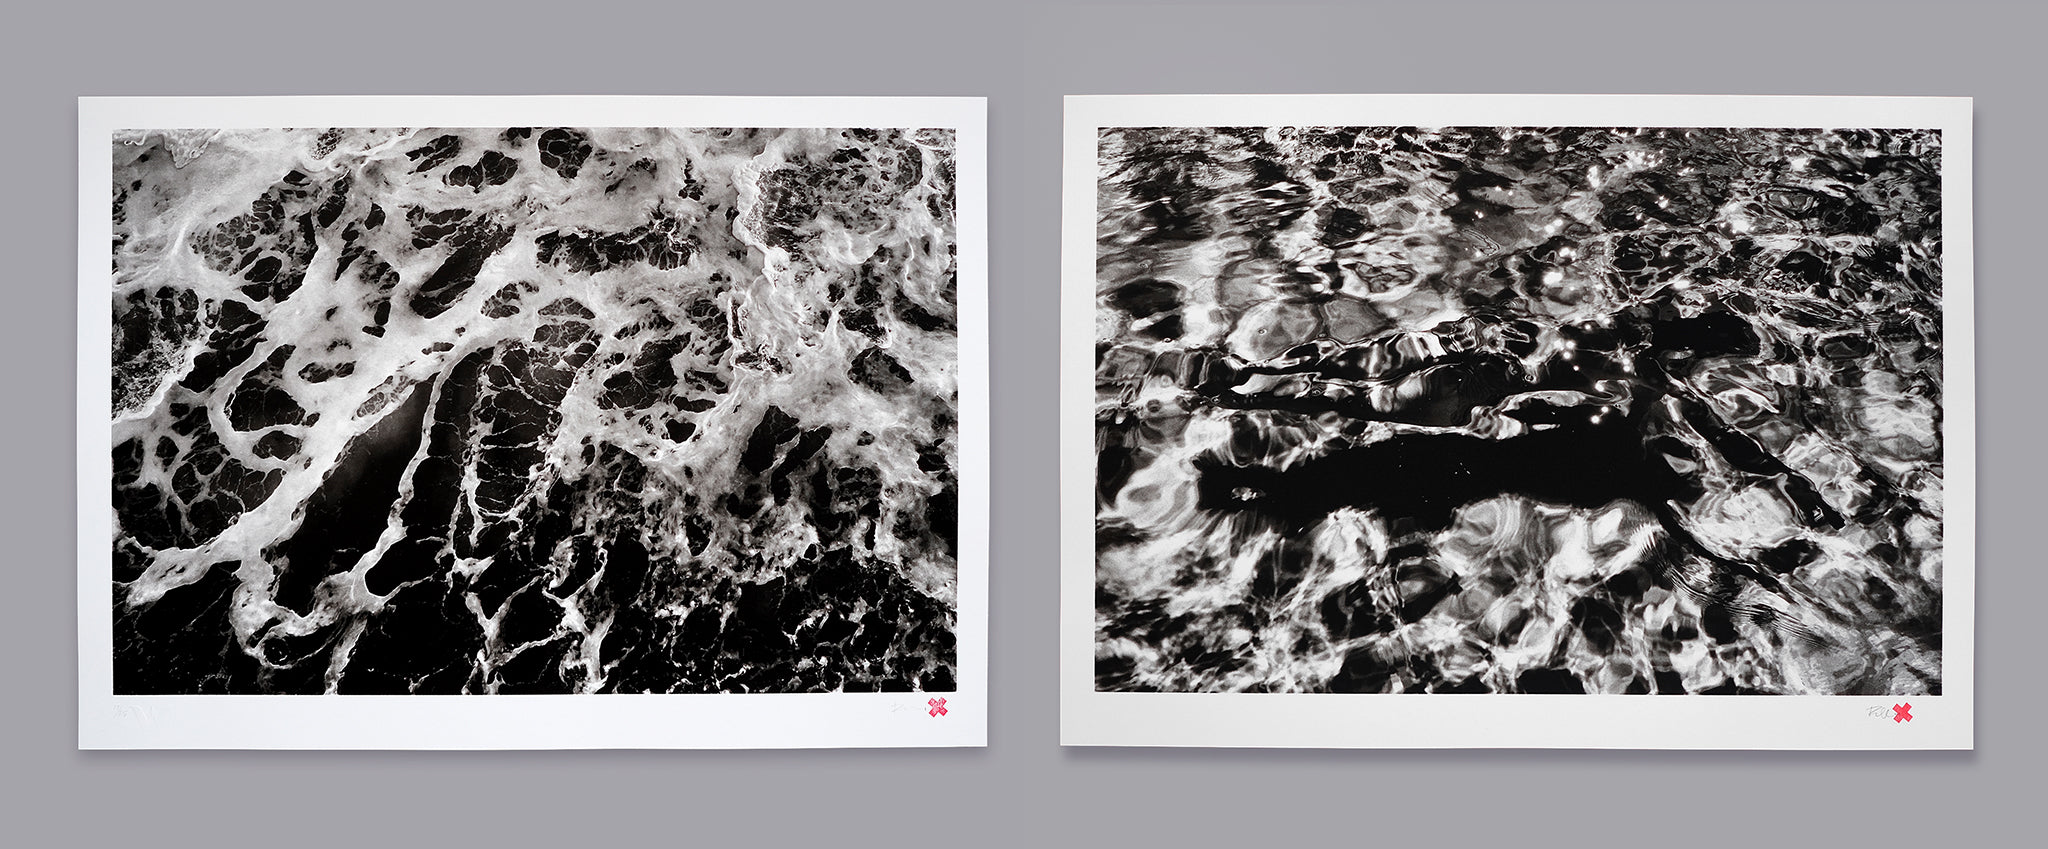 Rebecca Cleal Water Editions Screen Printed at White Duck Editions